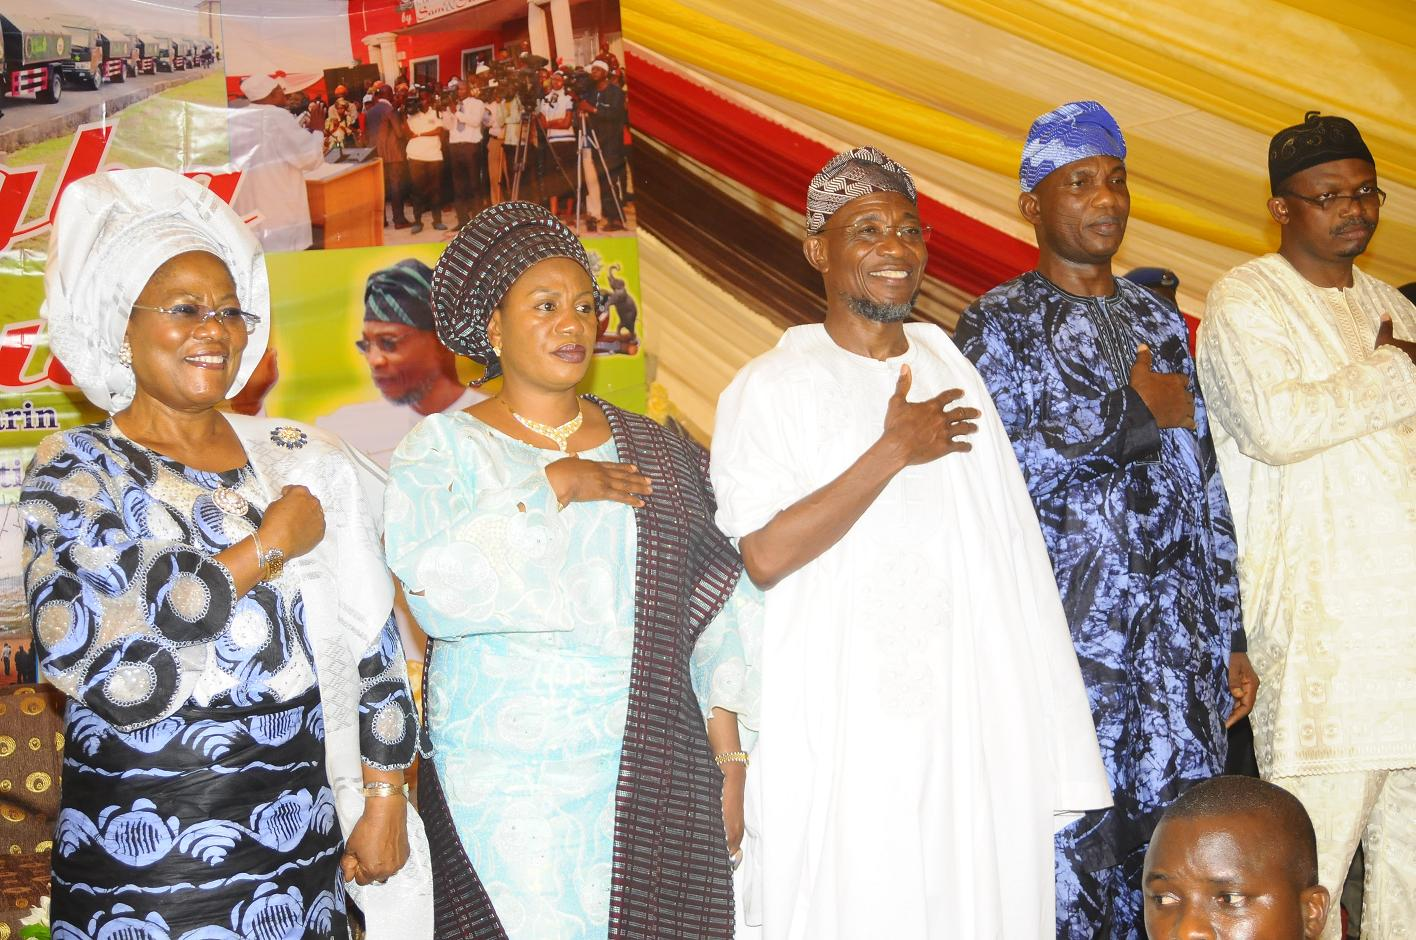 "From left, Deputy Governor State of Osun, Mrs Titi Laoye-Tomori; Wife of the Governor, Alhaja Sherifat Aregbesola; Governor, Ogbeni Rauf Aregbesola; Secretary to the State Government of Osun, Alhaji Moshood Adeoti and Member House of Representatives representing Atakunmosa East/West and Ilesa East/West, Honourable Ajibola Famurewa,  after words of support for Aregbesola Second Term in office by people of Ijeshaland,  during the 6th edition of an interactive programme tagged, ""Gban-gba Dekun"" in Ijesha South Federal Constituency consisting of Ilesa West, Ilesa East, Atakumosa East and Atakumosa West Local Governments at Ilesa High School, Ilesa, State of Osun last week"